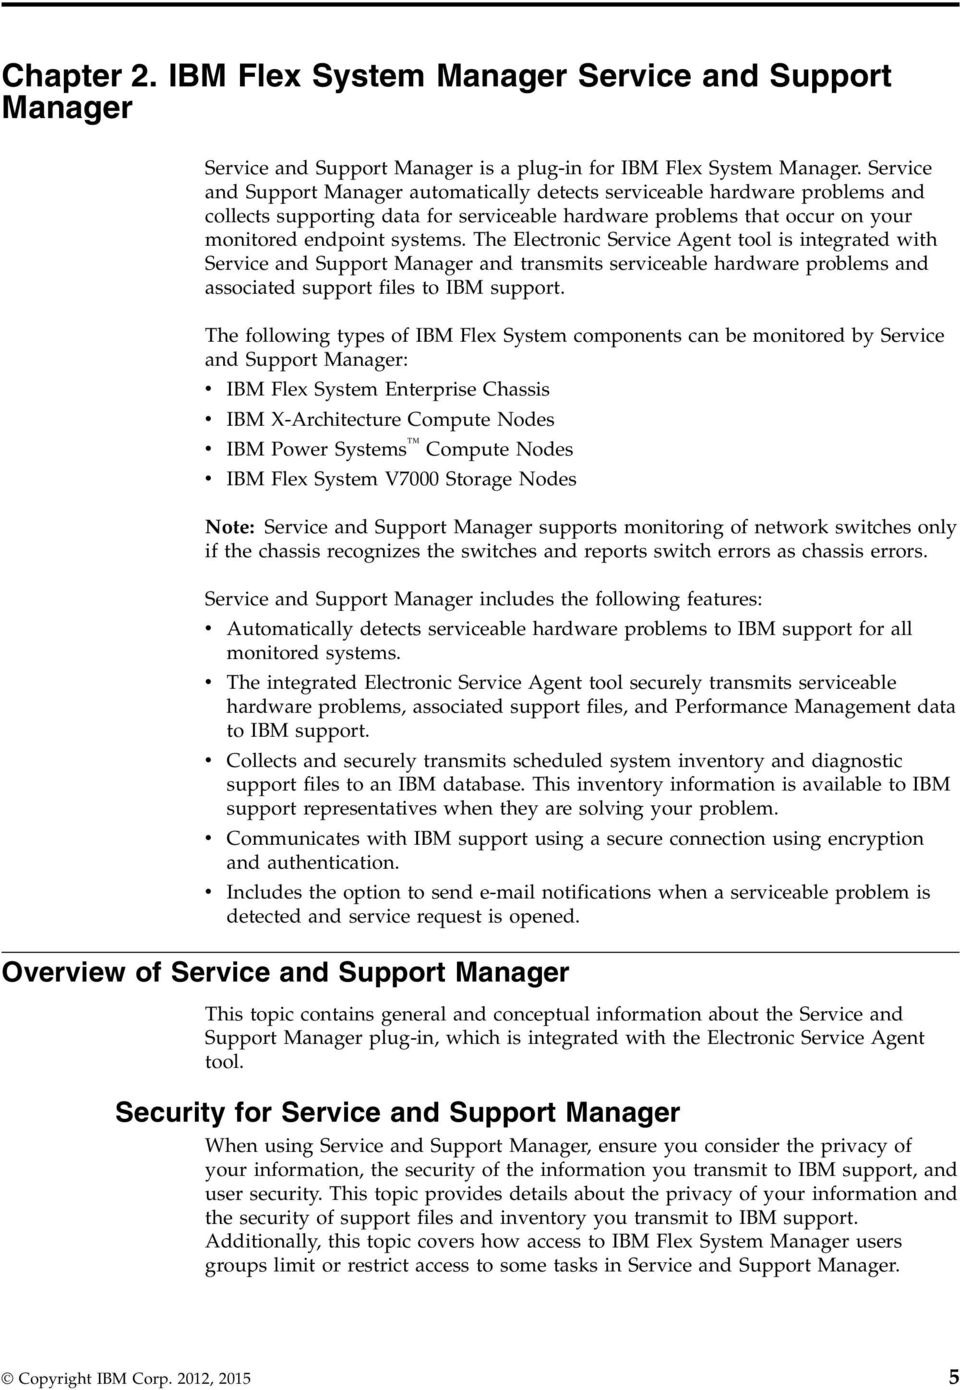 The Electronic Service Agent tool is integrated with Service and Support Manager and transmits serviceable hardware problems and associated support files to IBM support.